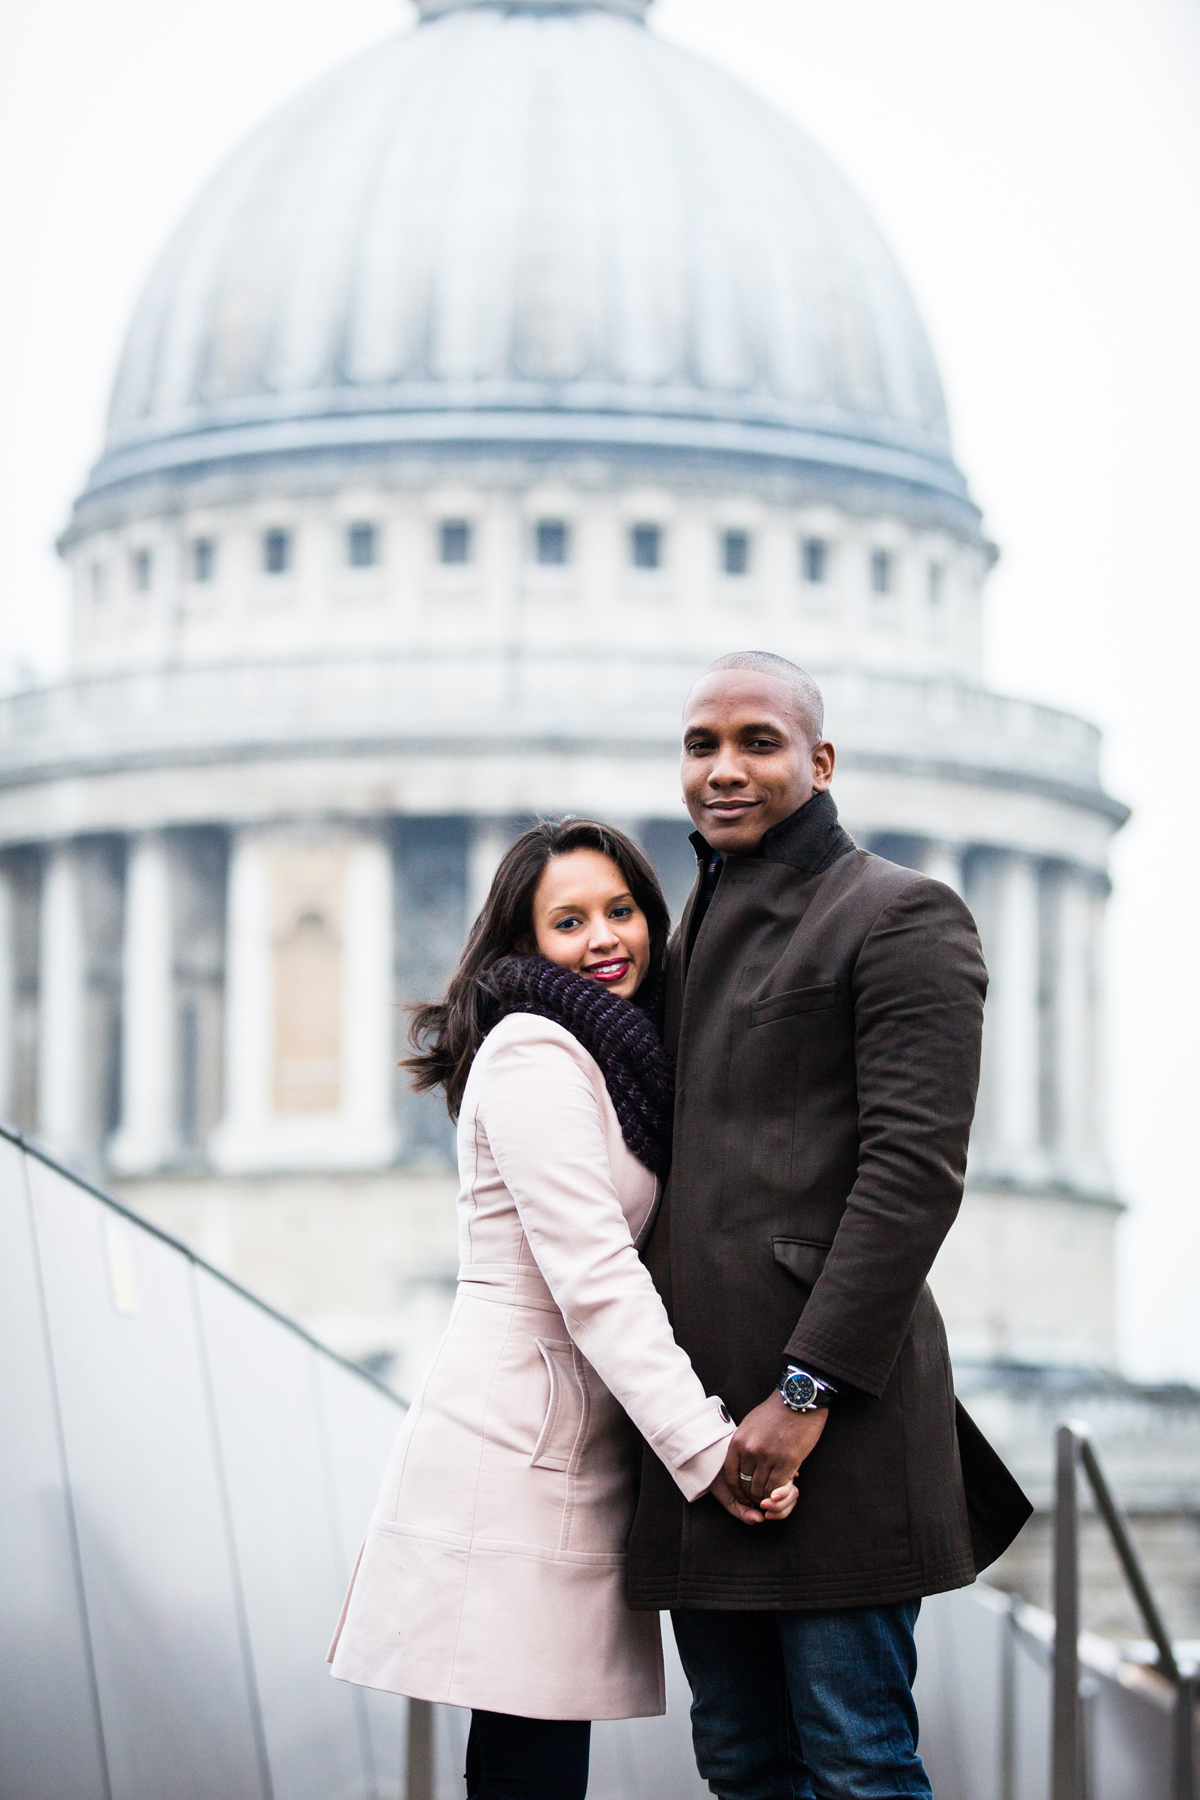 Couple portrait, engagement, The city, London photo portrait, St Pauls